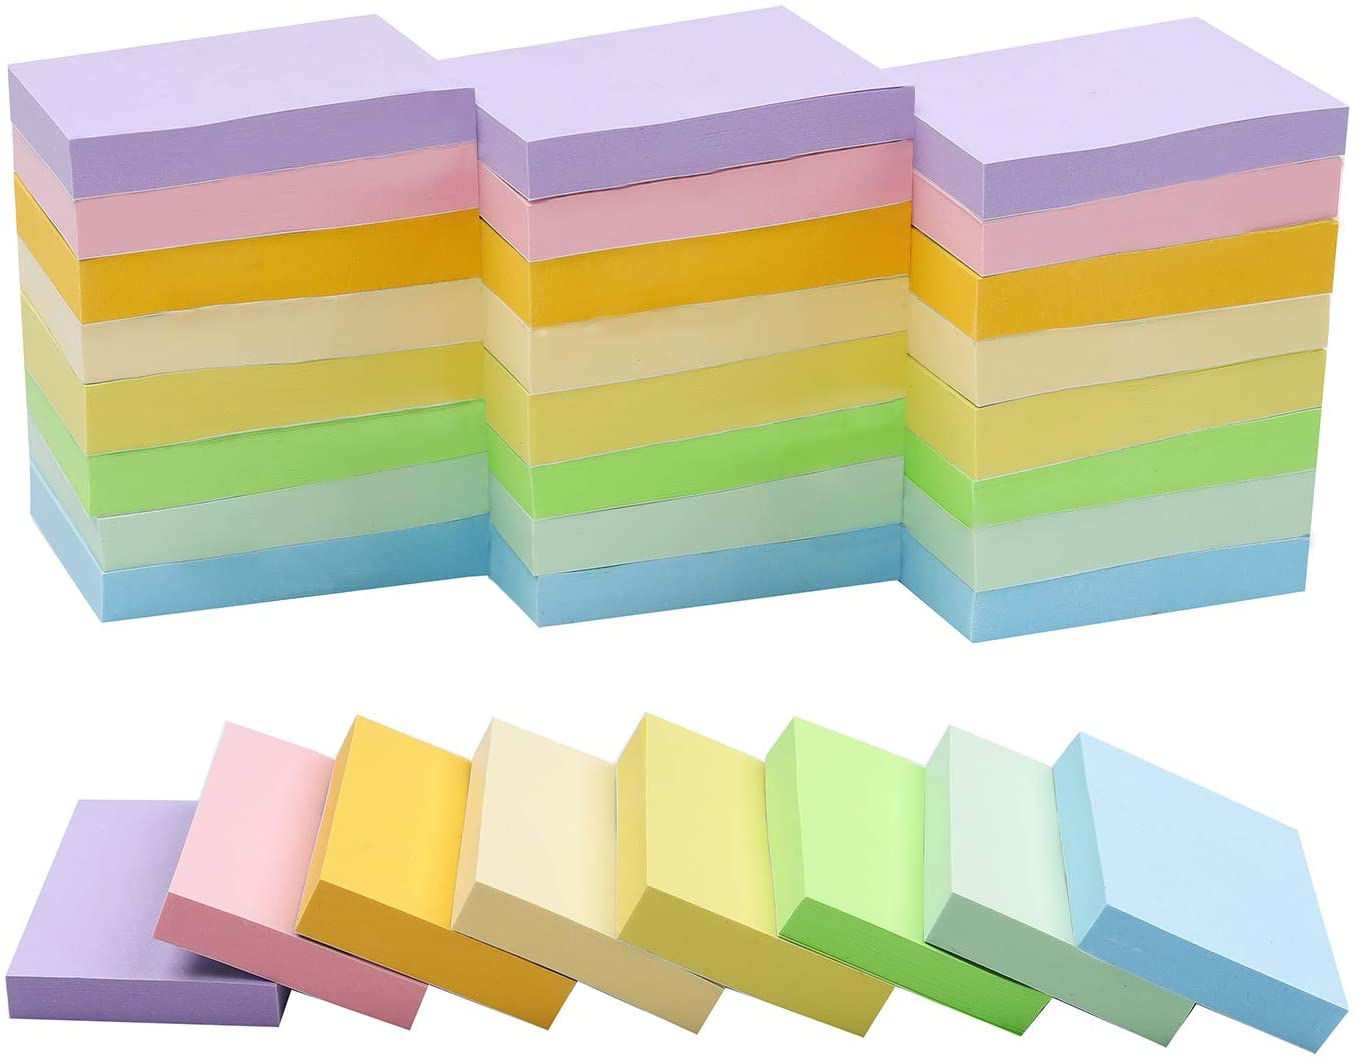 Manufacturer regenerated product Luxury Sticky Notes 1.5x2 Inches 48 Colors Pads Light Self-Stick